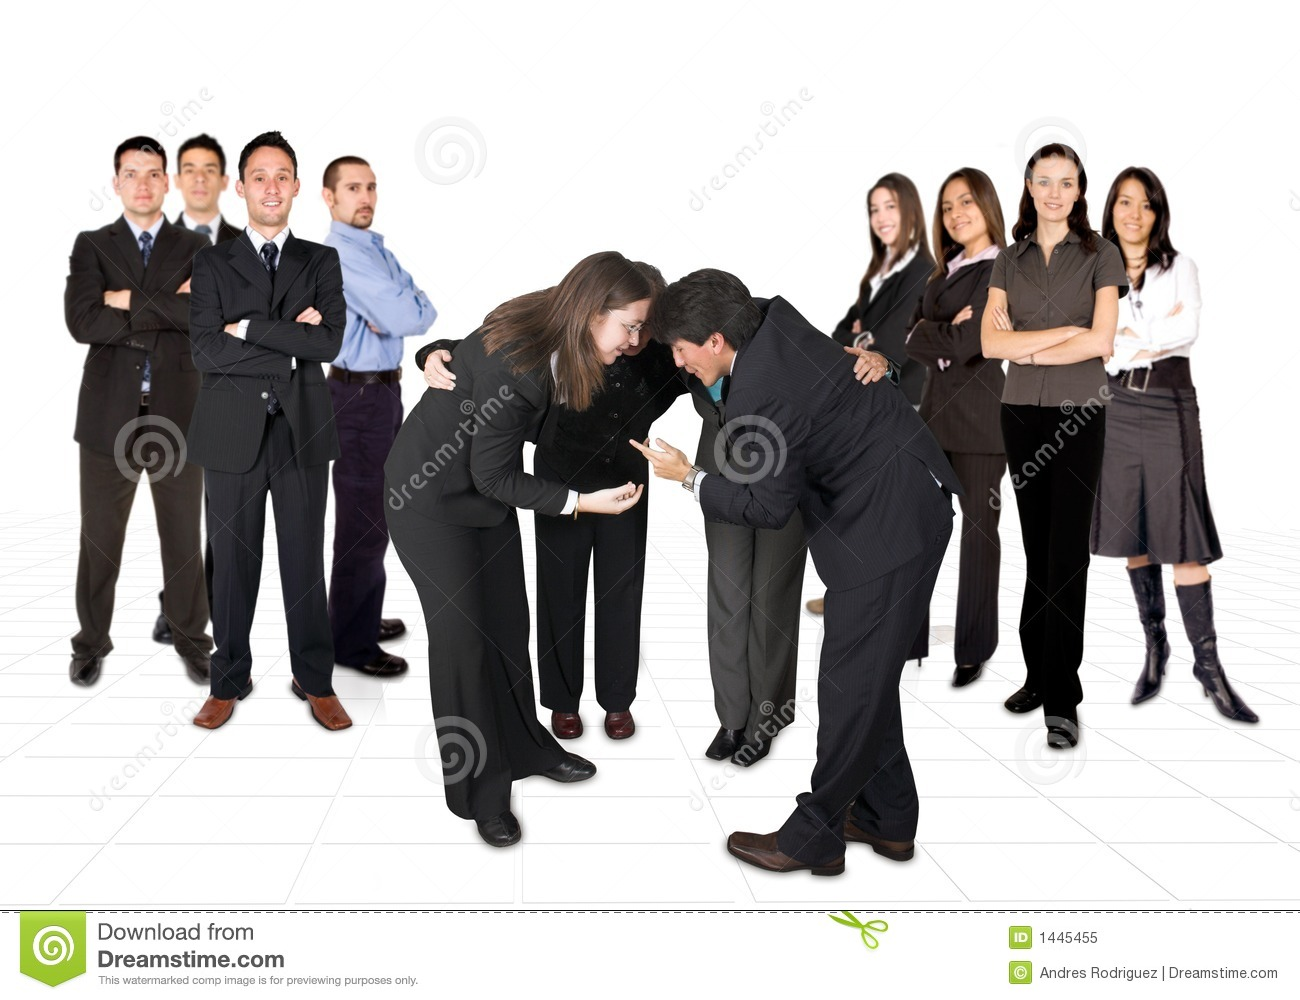 Royalty Free Stock Photo: Business developing team: www.dreamstime.com/royalty-free-stock-photo-business-developing...